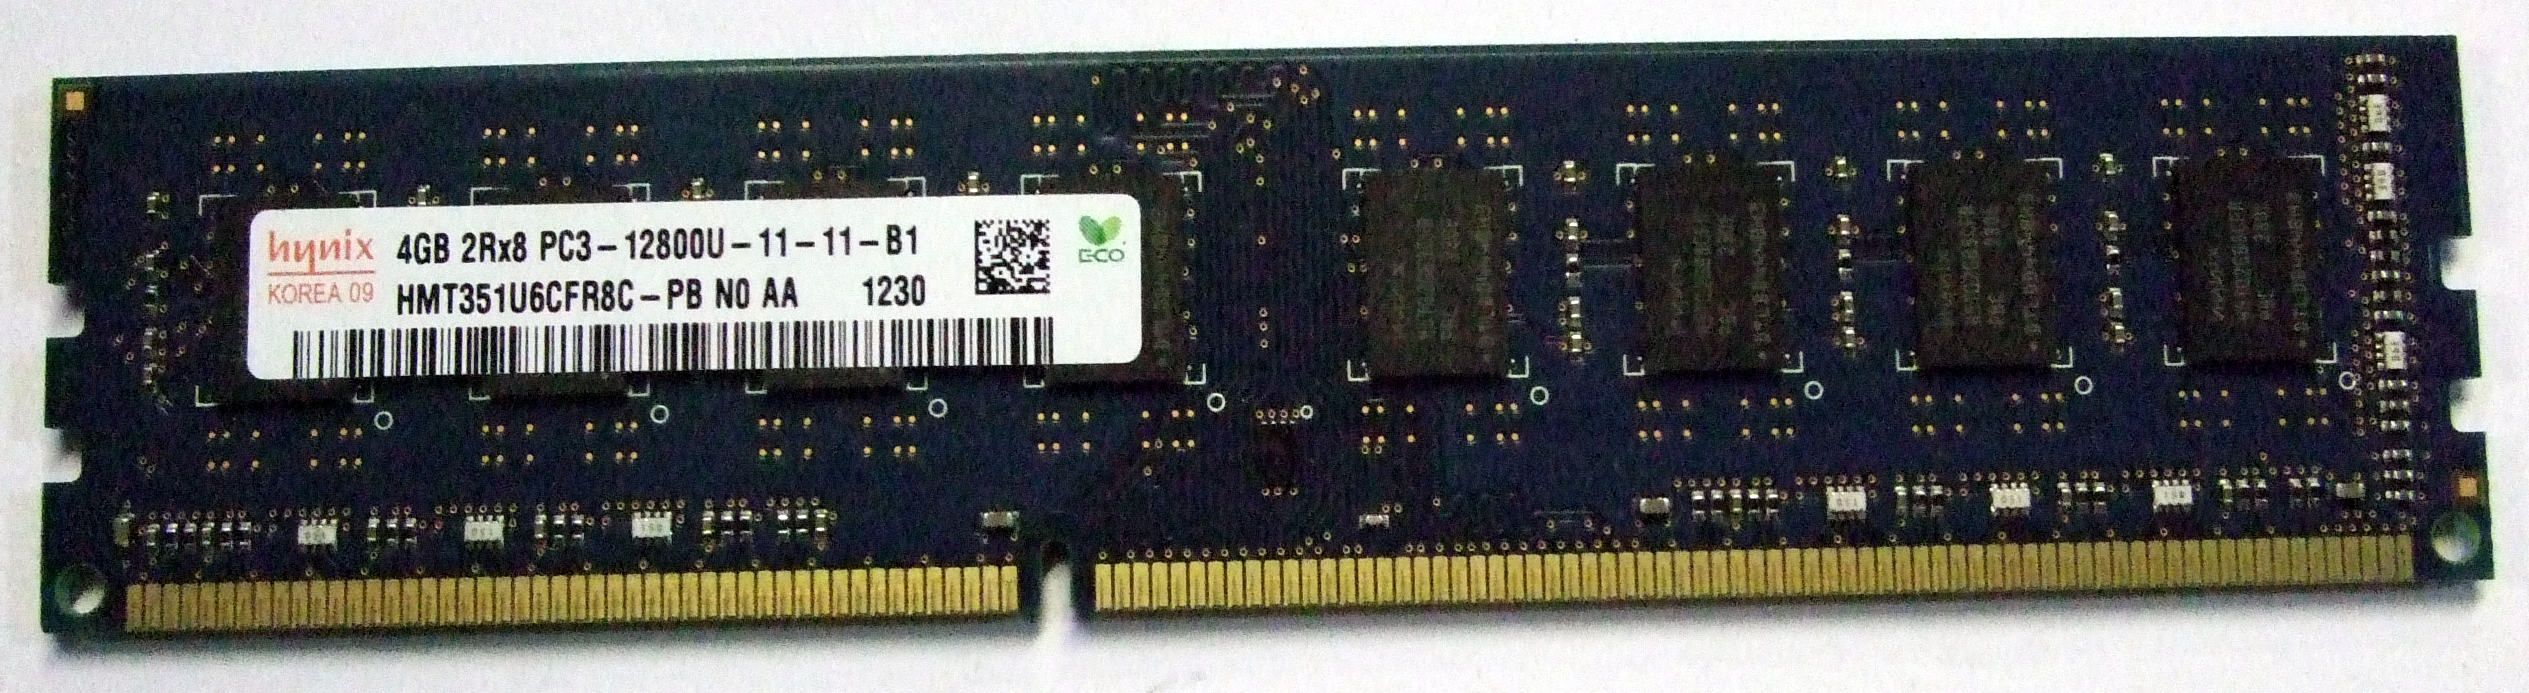 HMT351U6CFR8C-PB N0 AA Hynix 4GB DDR3 PC3-12800U RAM DIMM Enlarged Preview